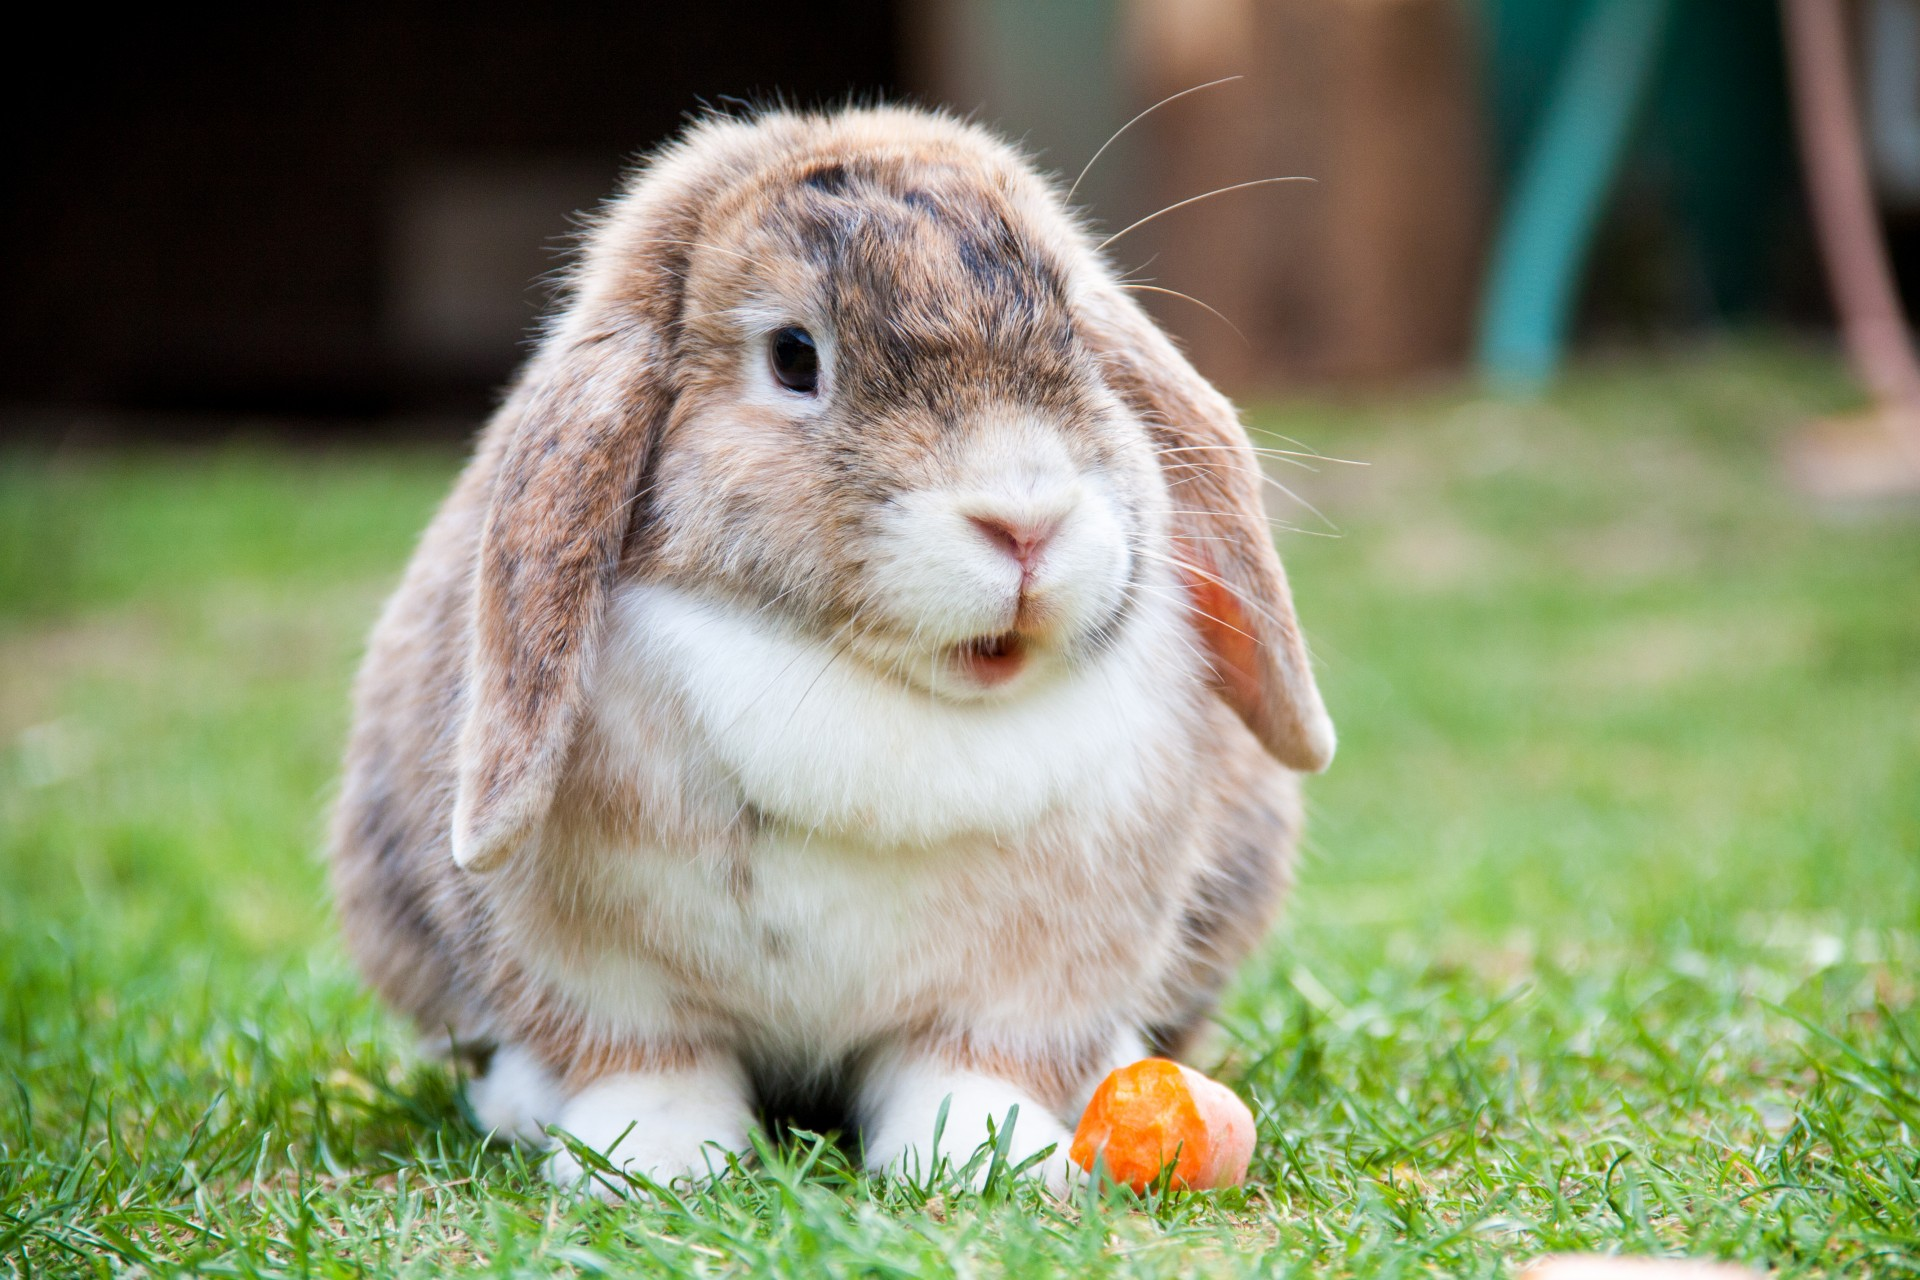 Lop Eared Rabbit Free Stock Photo - Public Domain Pictures